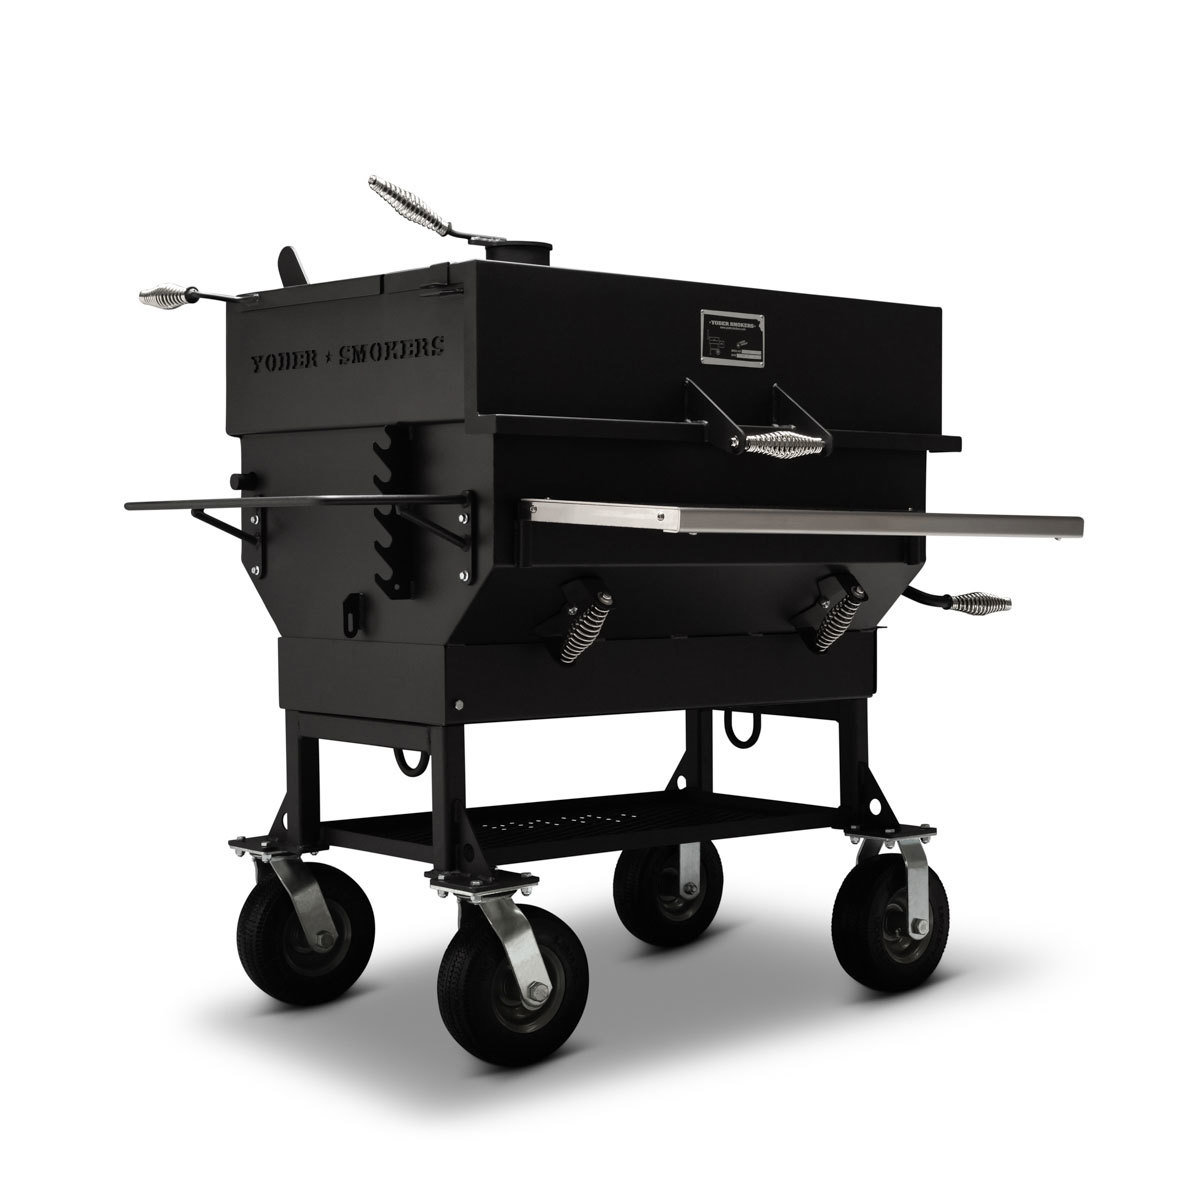 "The Yoder Smokers 24""x 36"" Charcoal Grill 01672"